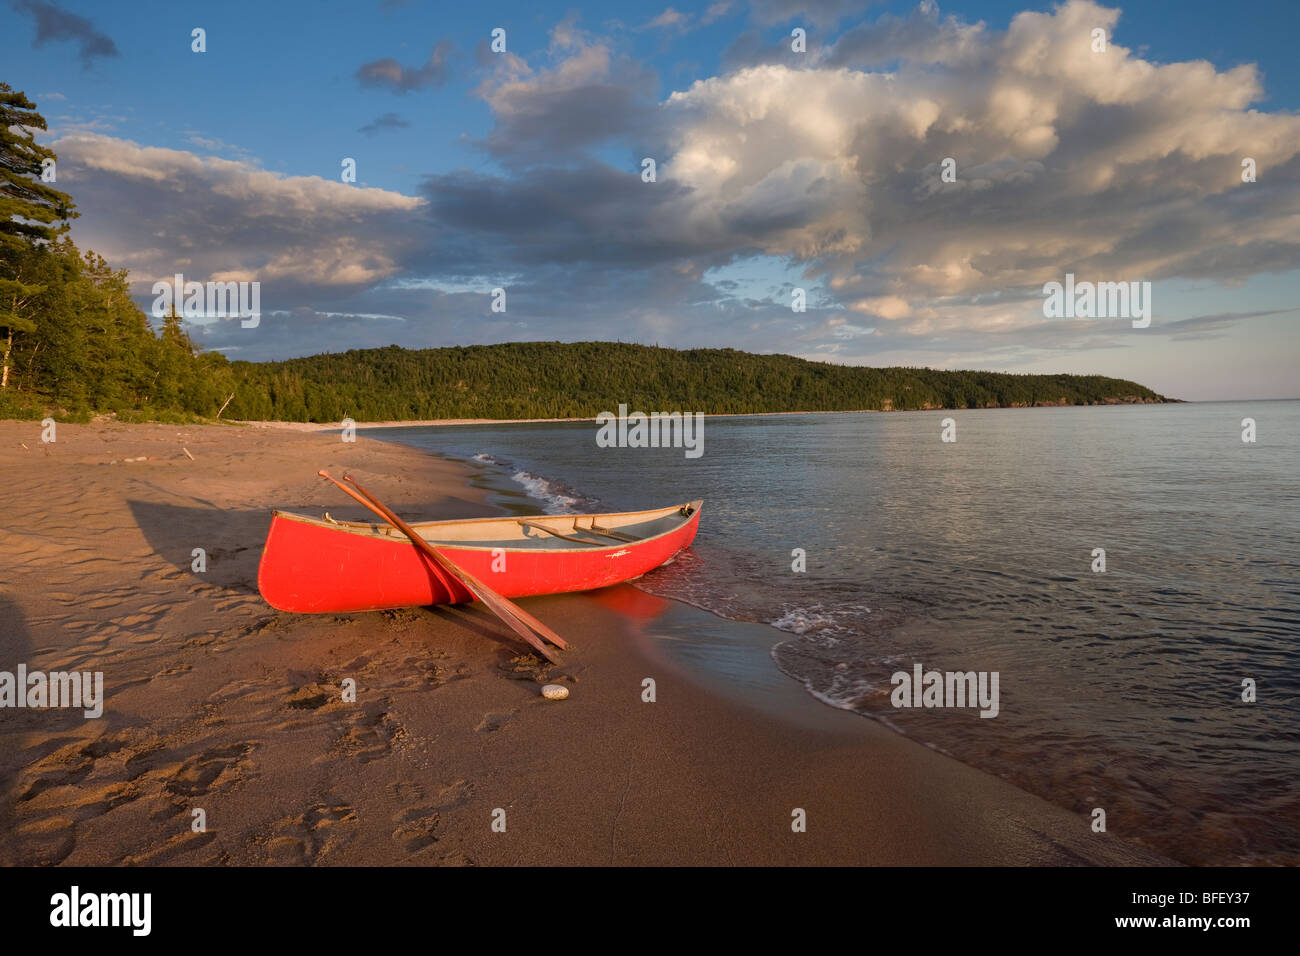 Red canoe on sandy beach of Gargantua Bay in Gargantua Harbour on Lake Superior in Lake Superior Provincial Park - Stock Image